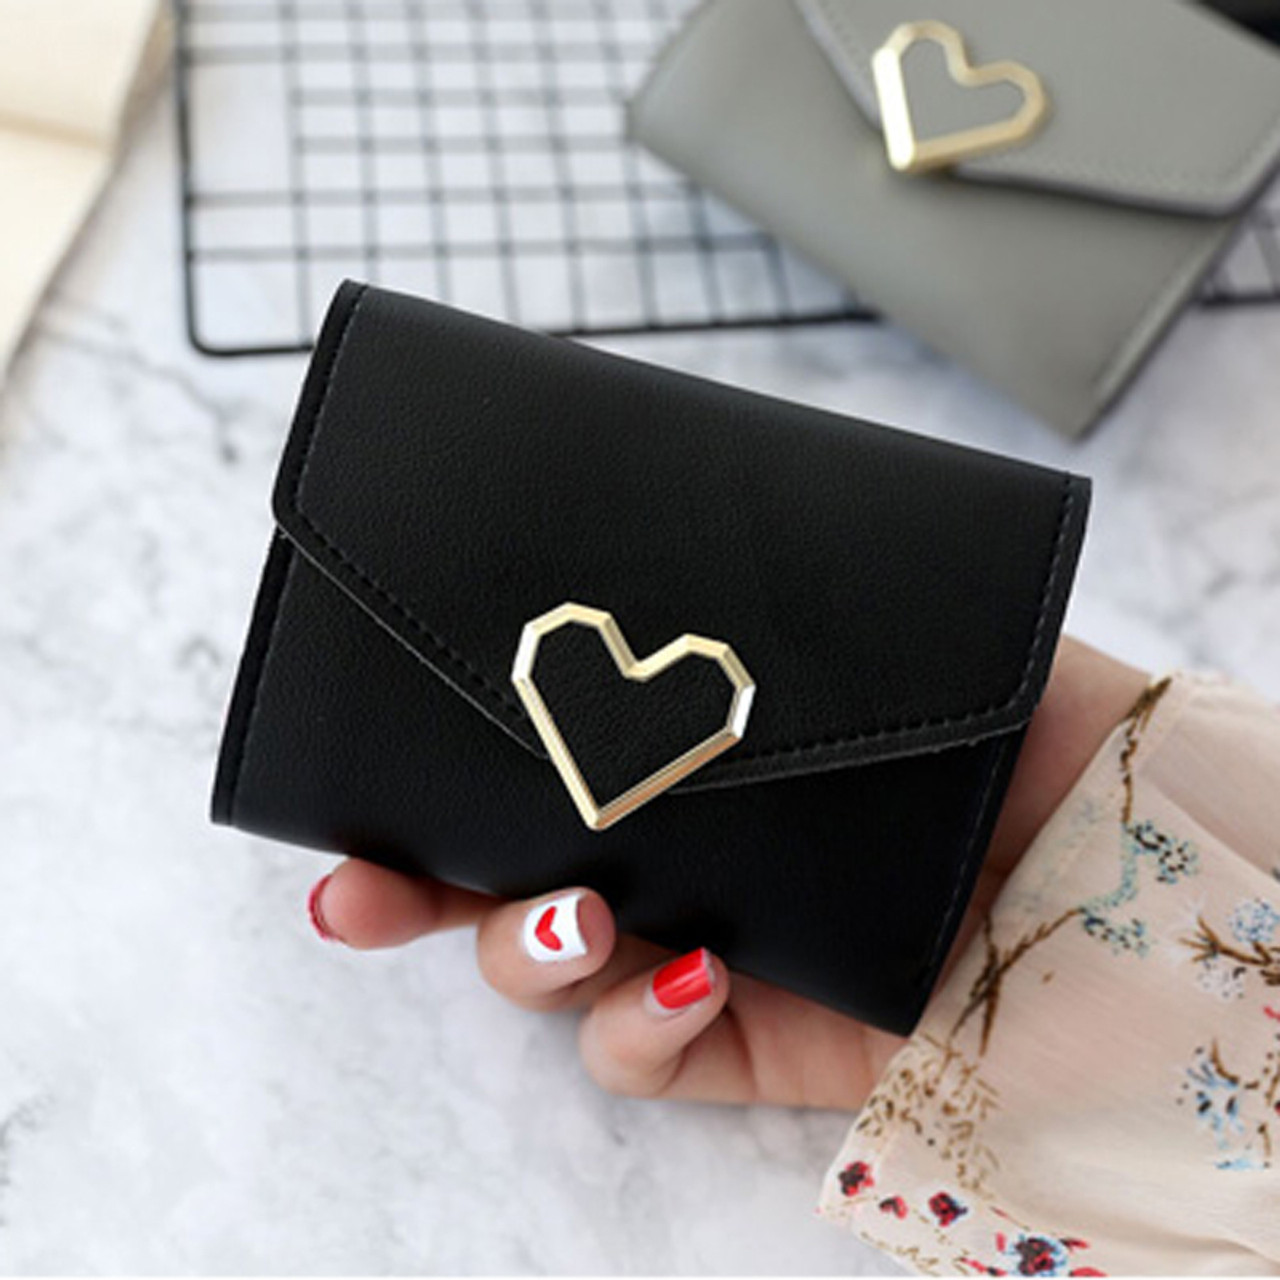 Women Wallet Small Brand Purse Women Leather Ladies Hand Bag Women Wallets Money Clip For Girls Slim Wallet Clutch Mini Bags Onshopdeals Com